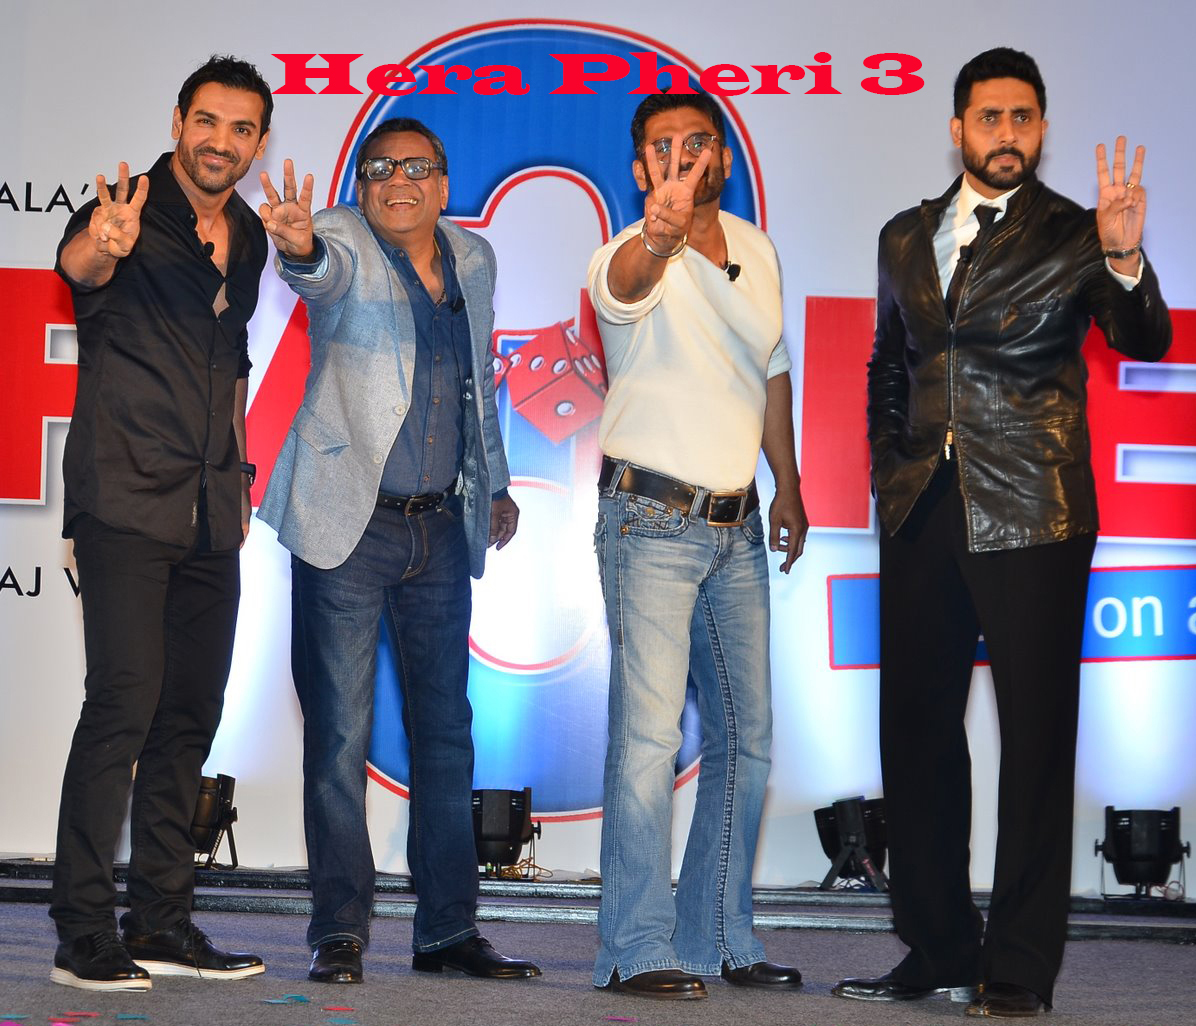 Hera Pheri 3 First Look Poster